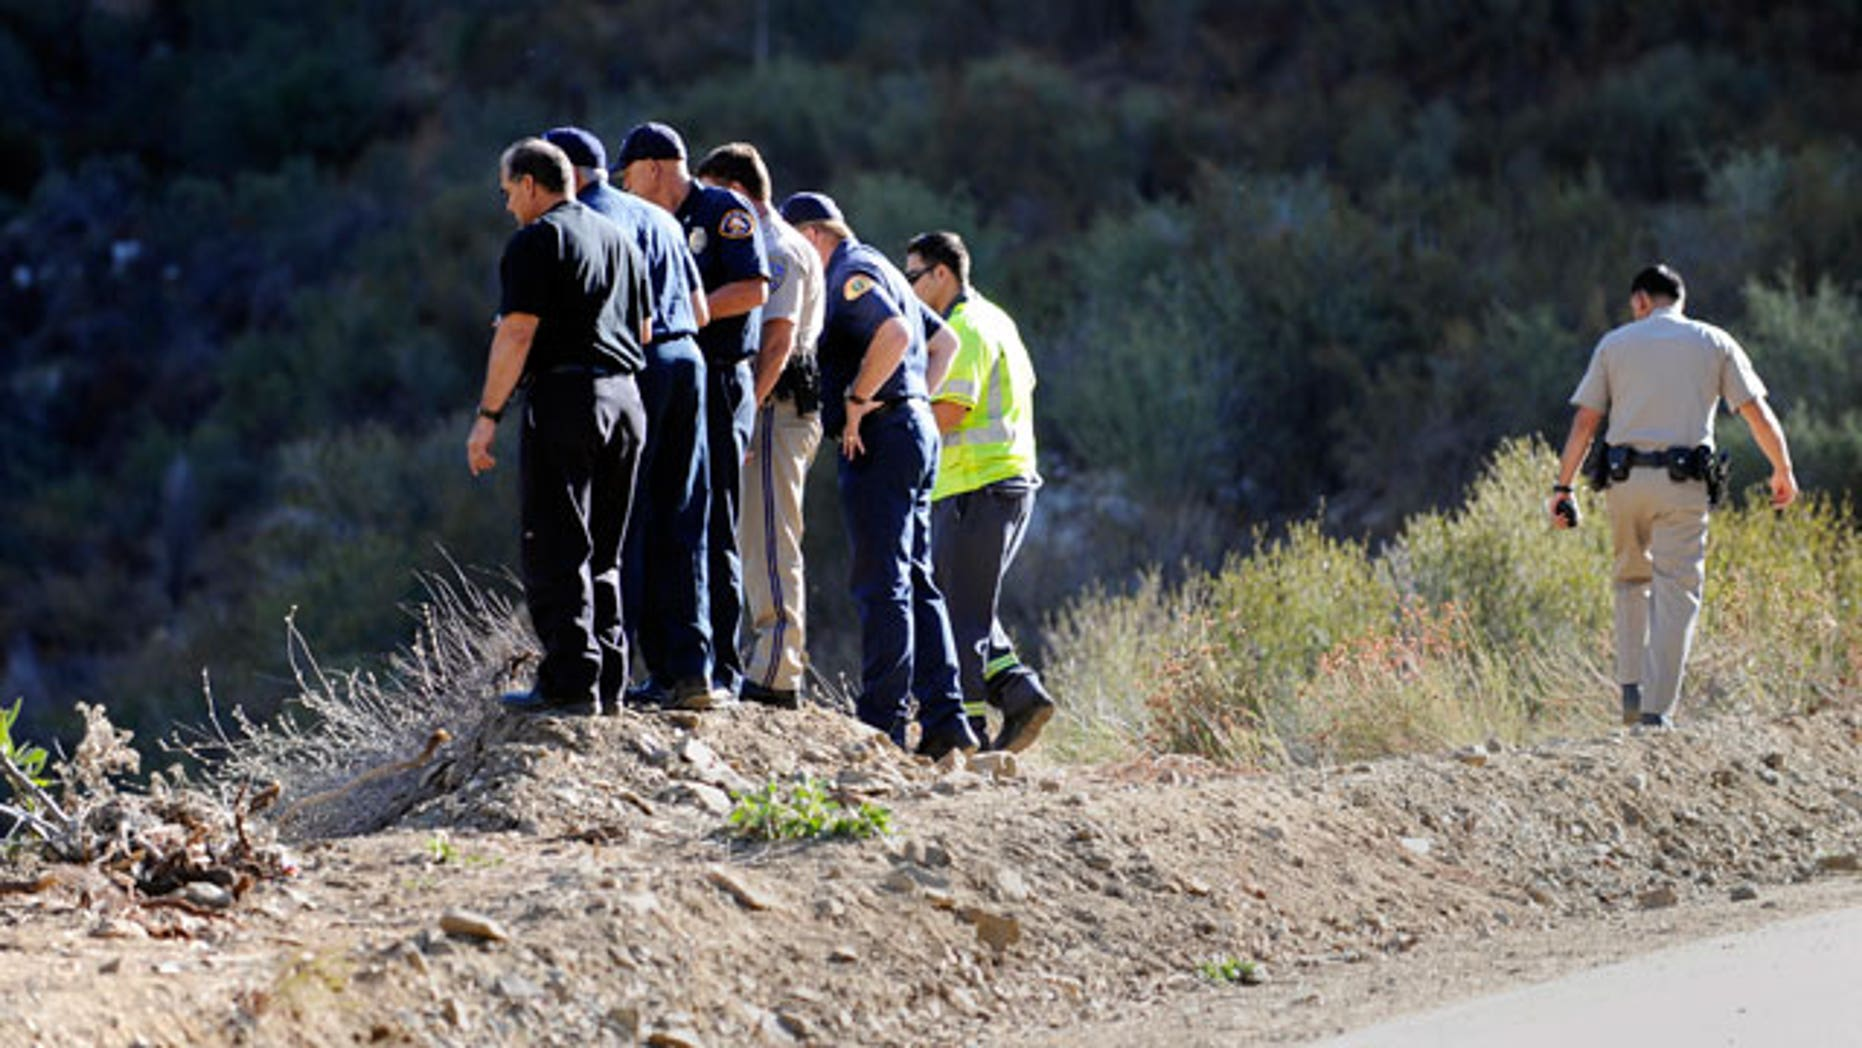 California Highway patrol officers investigate the scene of two cars that were recovered at the bottom of a remote mountain in Castaic, Calif., Friday, Sept. 30, 2011 .